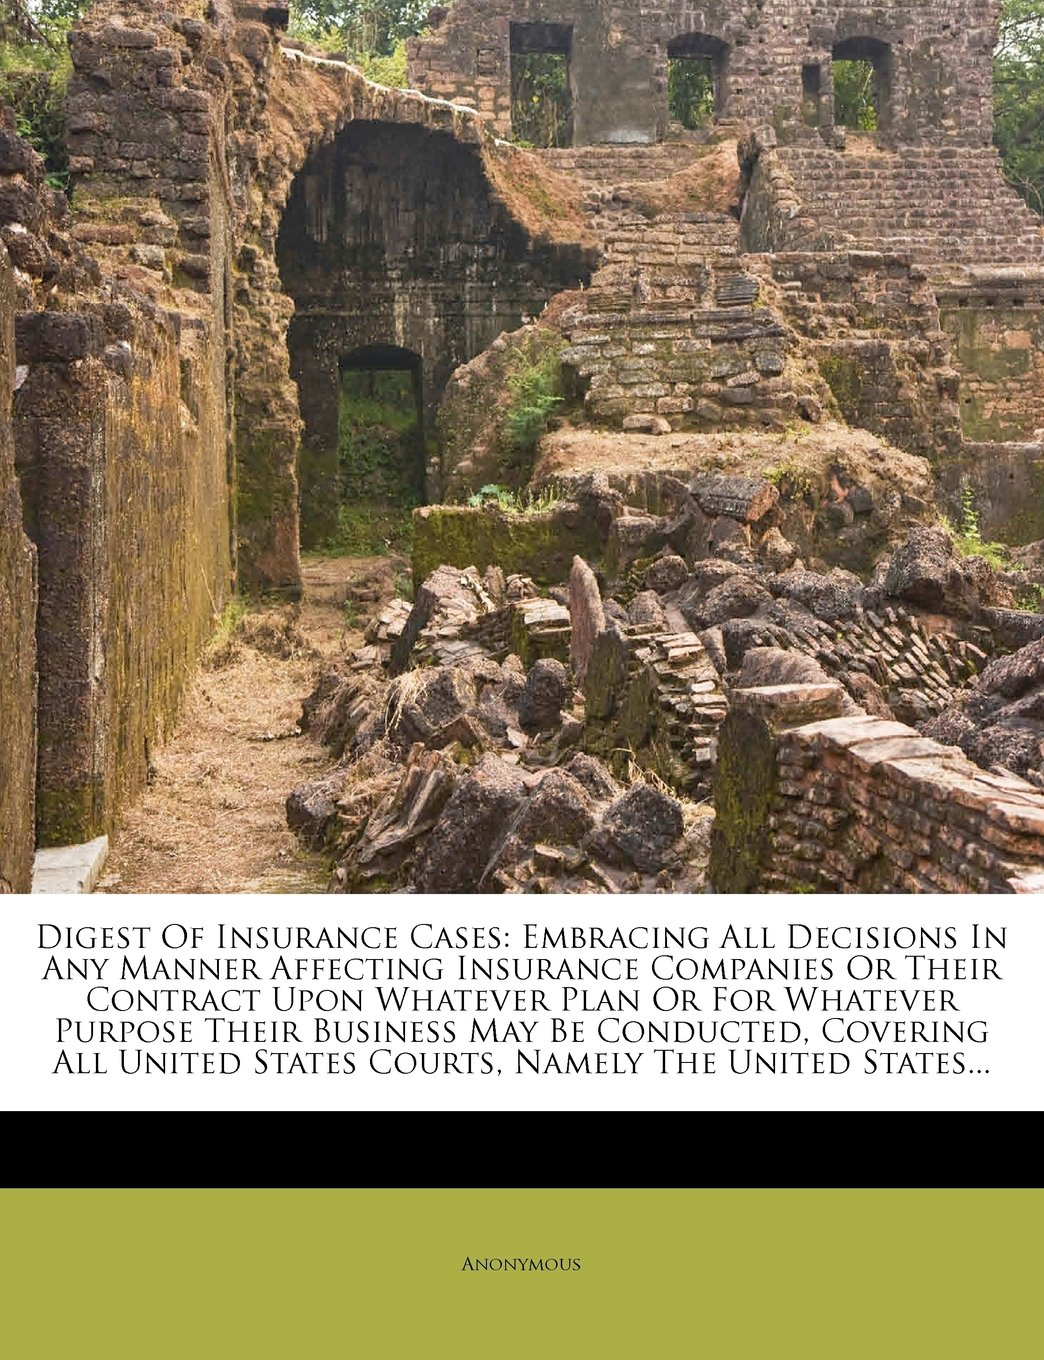 Digest Of Insurance Cases: Embracing All Decisions In Any Manner Affecting Insurance Companies Or Their Contract Upon Whatever Plan Or For Whatever ... States Courts, Namely The United States... PDF